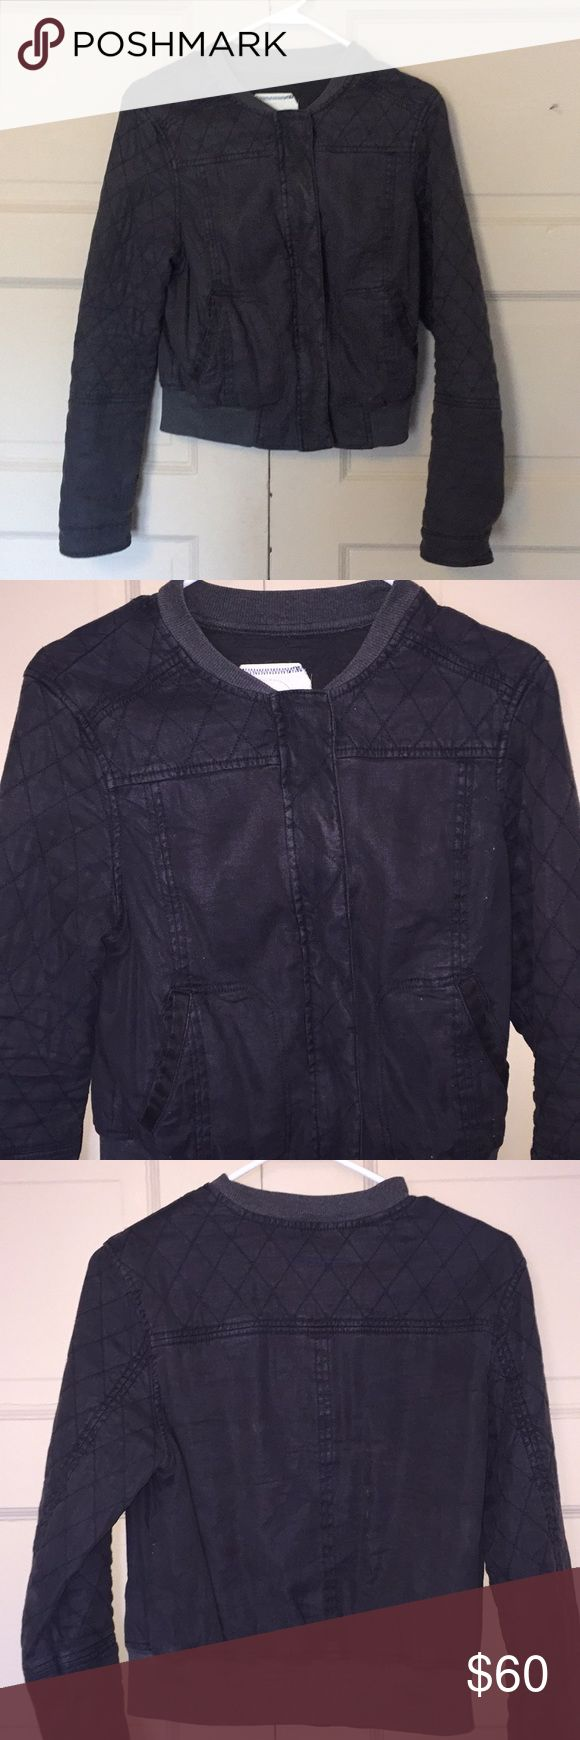 Anthropologie Hei Hei Grey Bomber Grey bomber jacket from Anthropologie. Size Medium. This jacket is in excellent condition. Beautiful charcoal grey goes with anything and is great for any season! Anthropologie Jackets & Coats